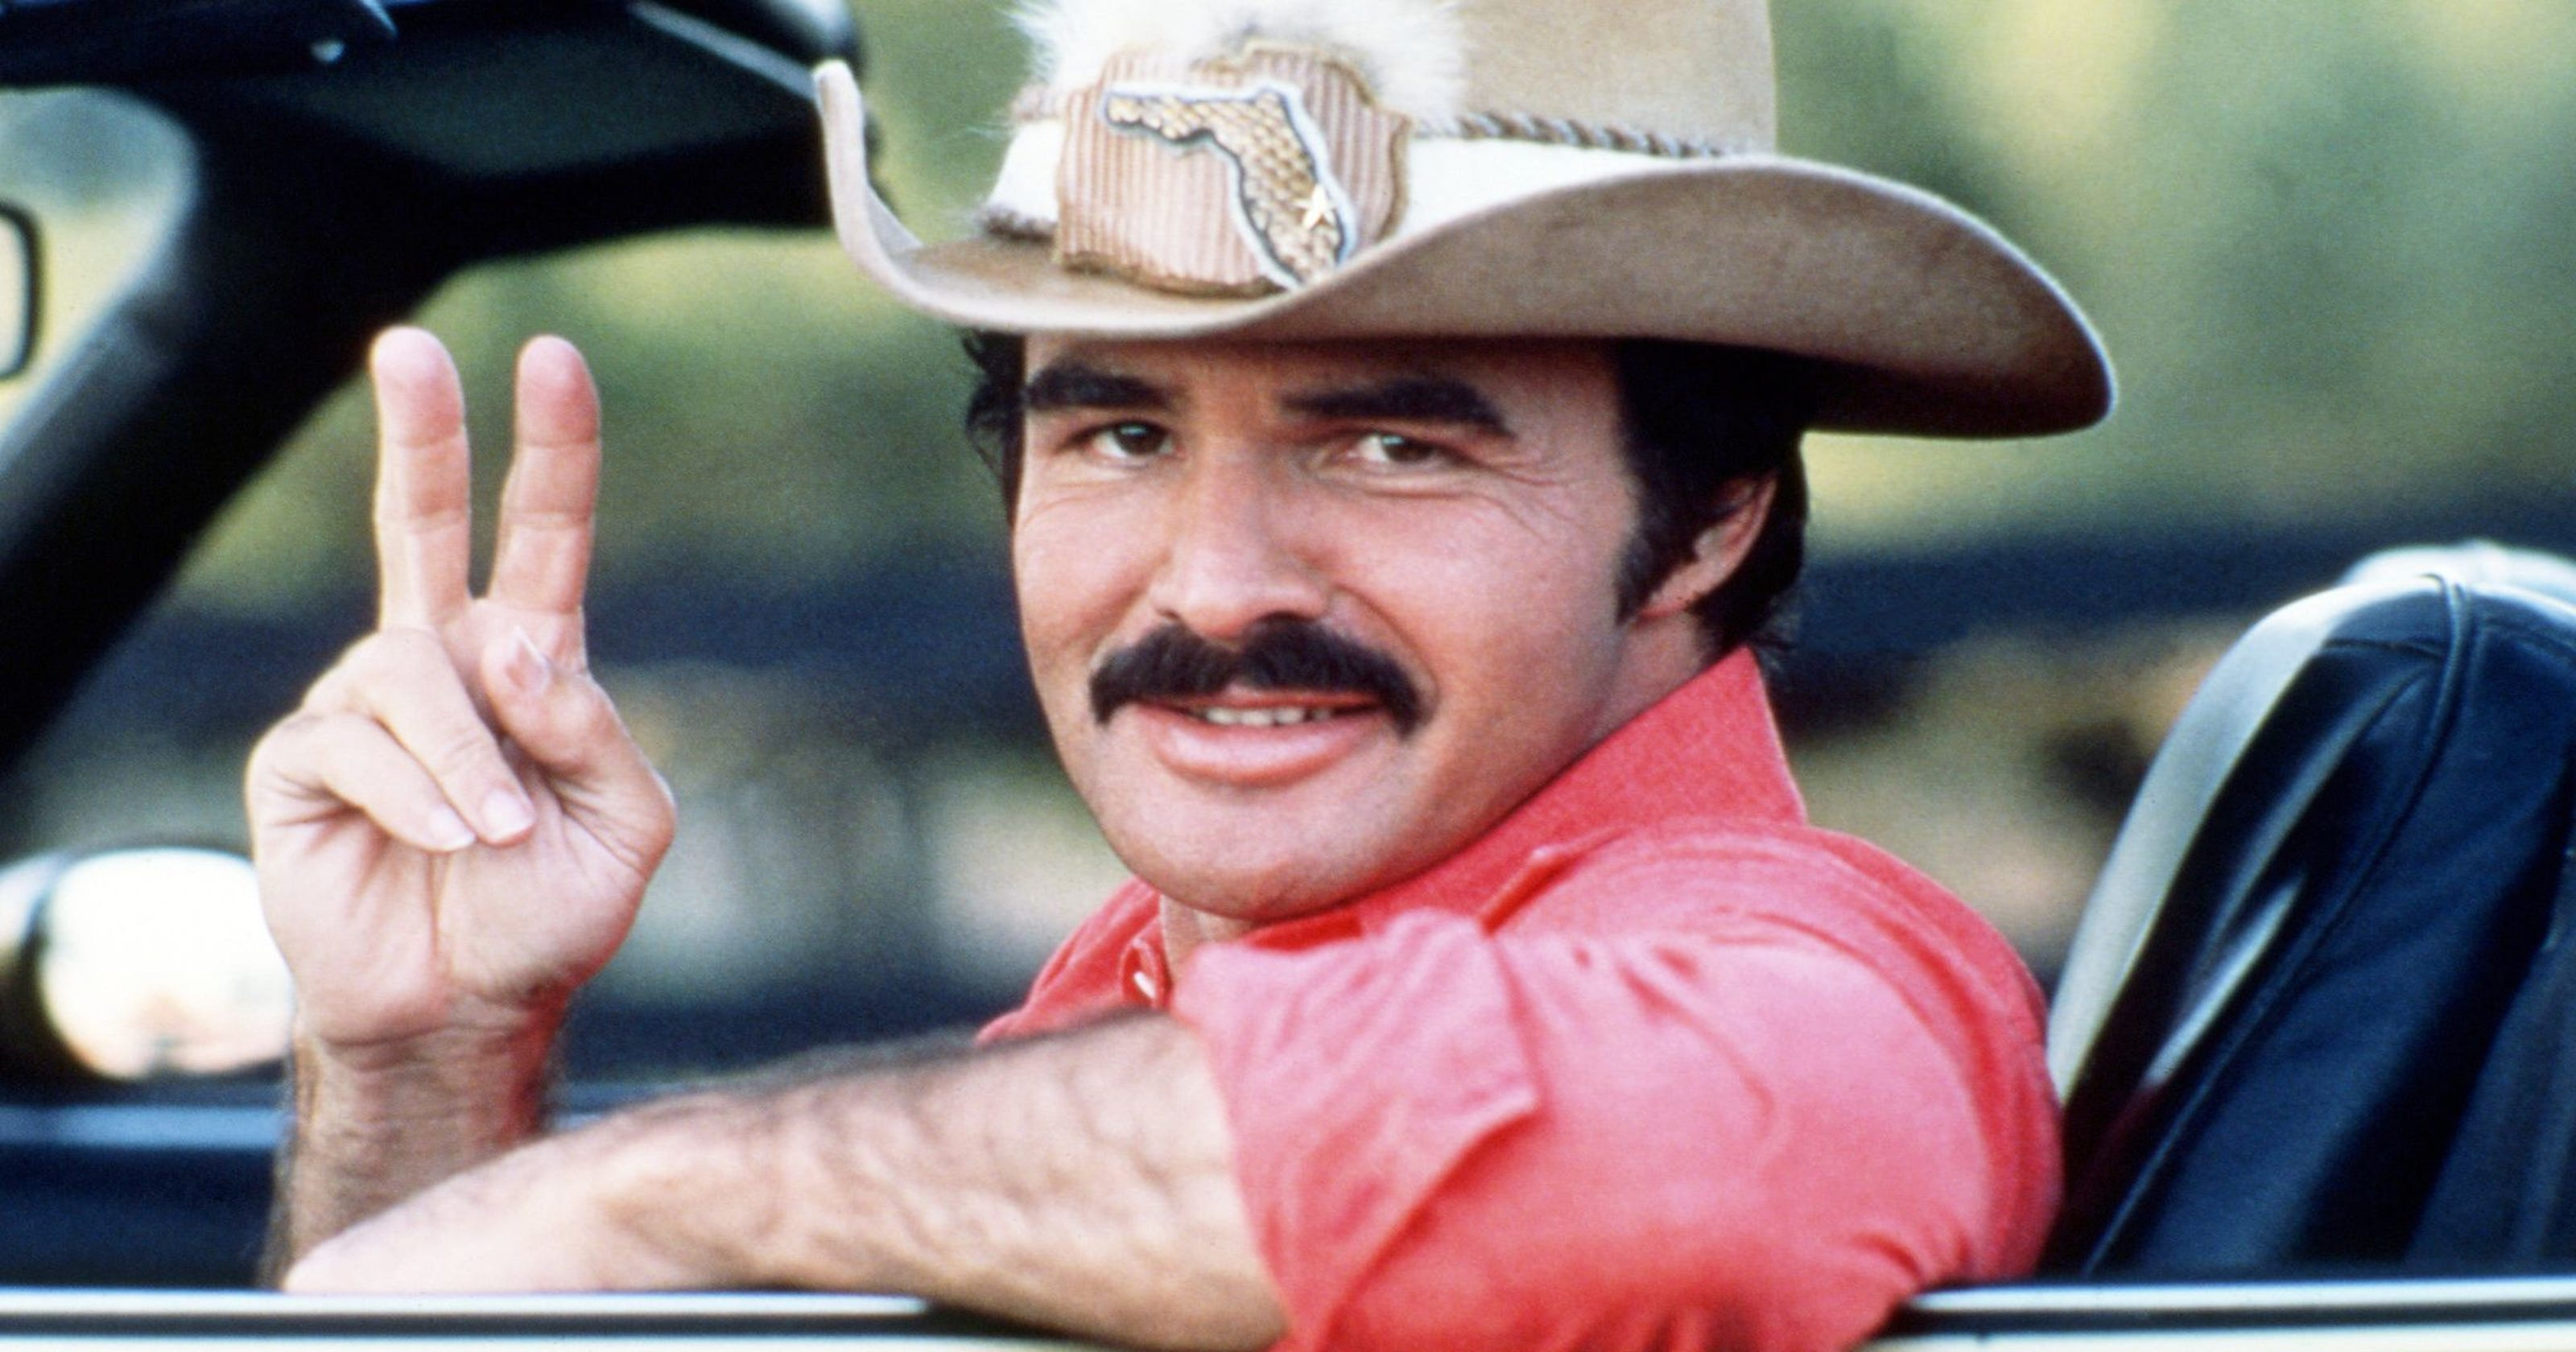 958b5a964fafe Burt Reynolds never left Florida  His many ties to the Sunshine State